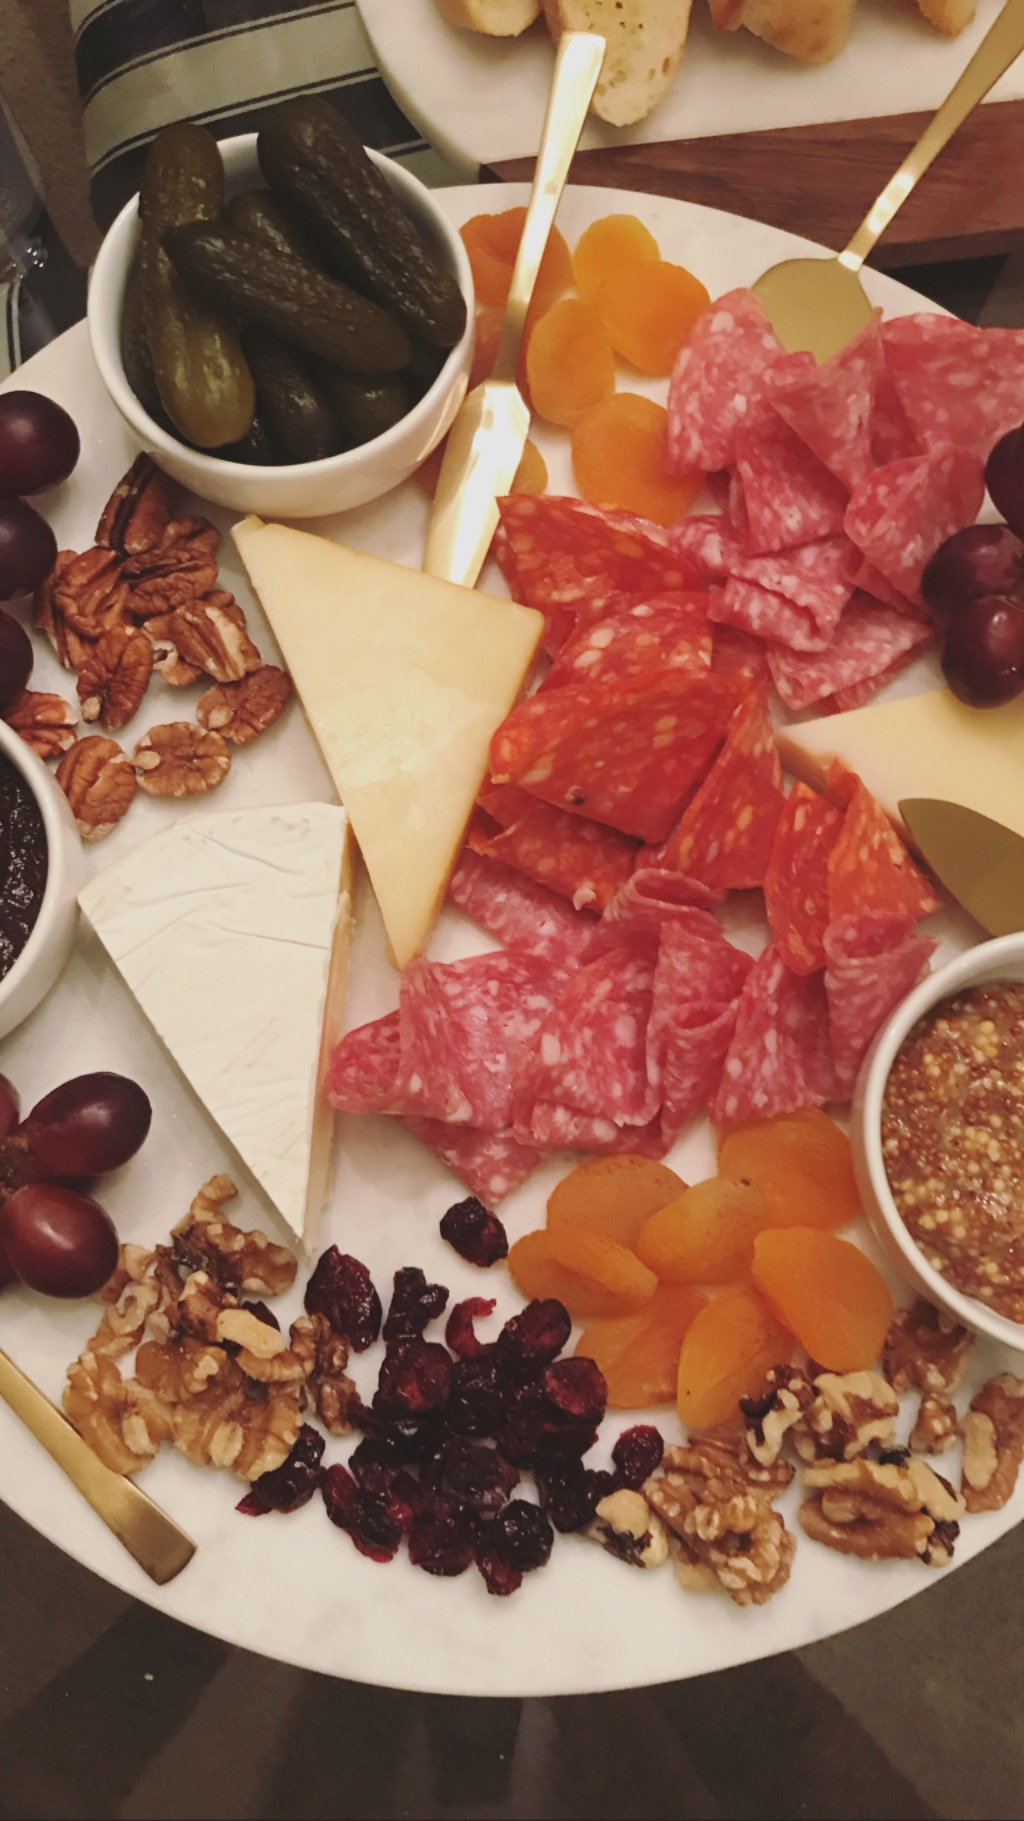 Charcuterie… - Here's what you need to master this:Cheese, darn good, expensive cheese. Italian meats. French baguettes. Dried fruits, fresh fruits. Nuts on nuts. Whole grain mustard. Fig Butter. Mini sweet pickles. Gold cheese knives, of course, all served on a giant marble slab. Katie style.